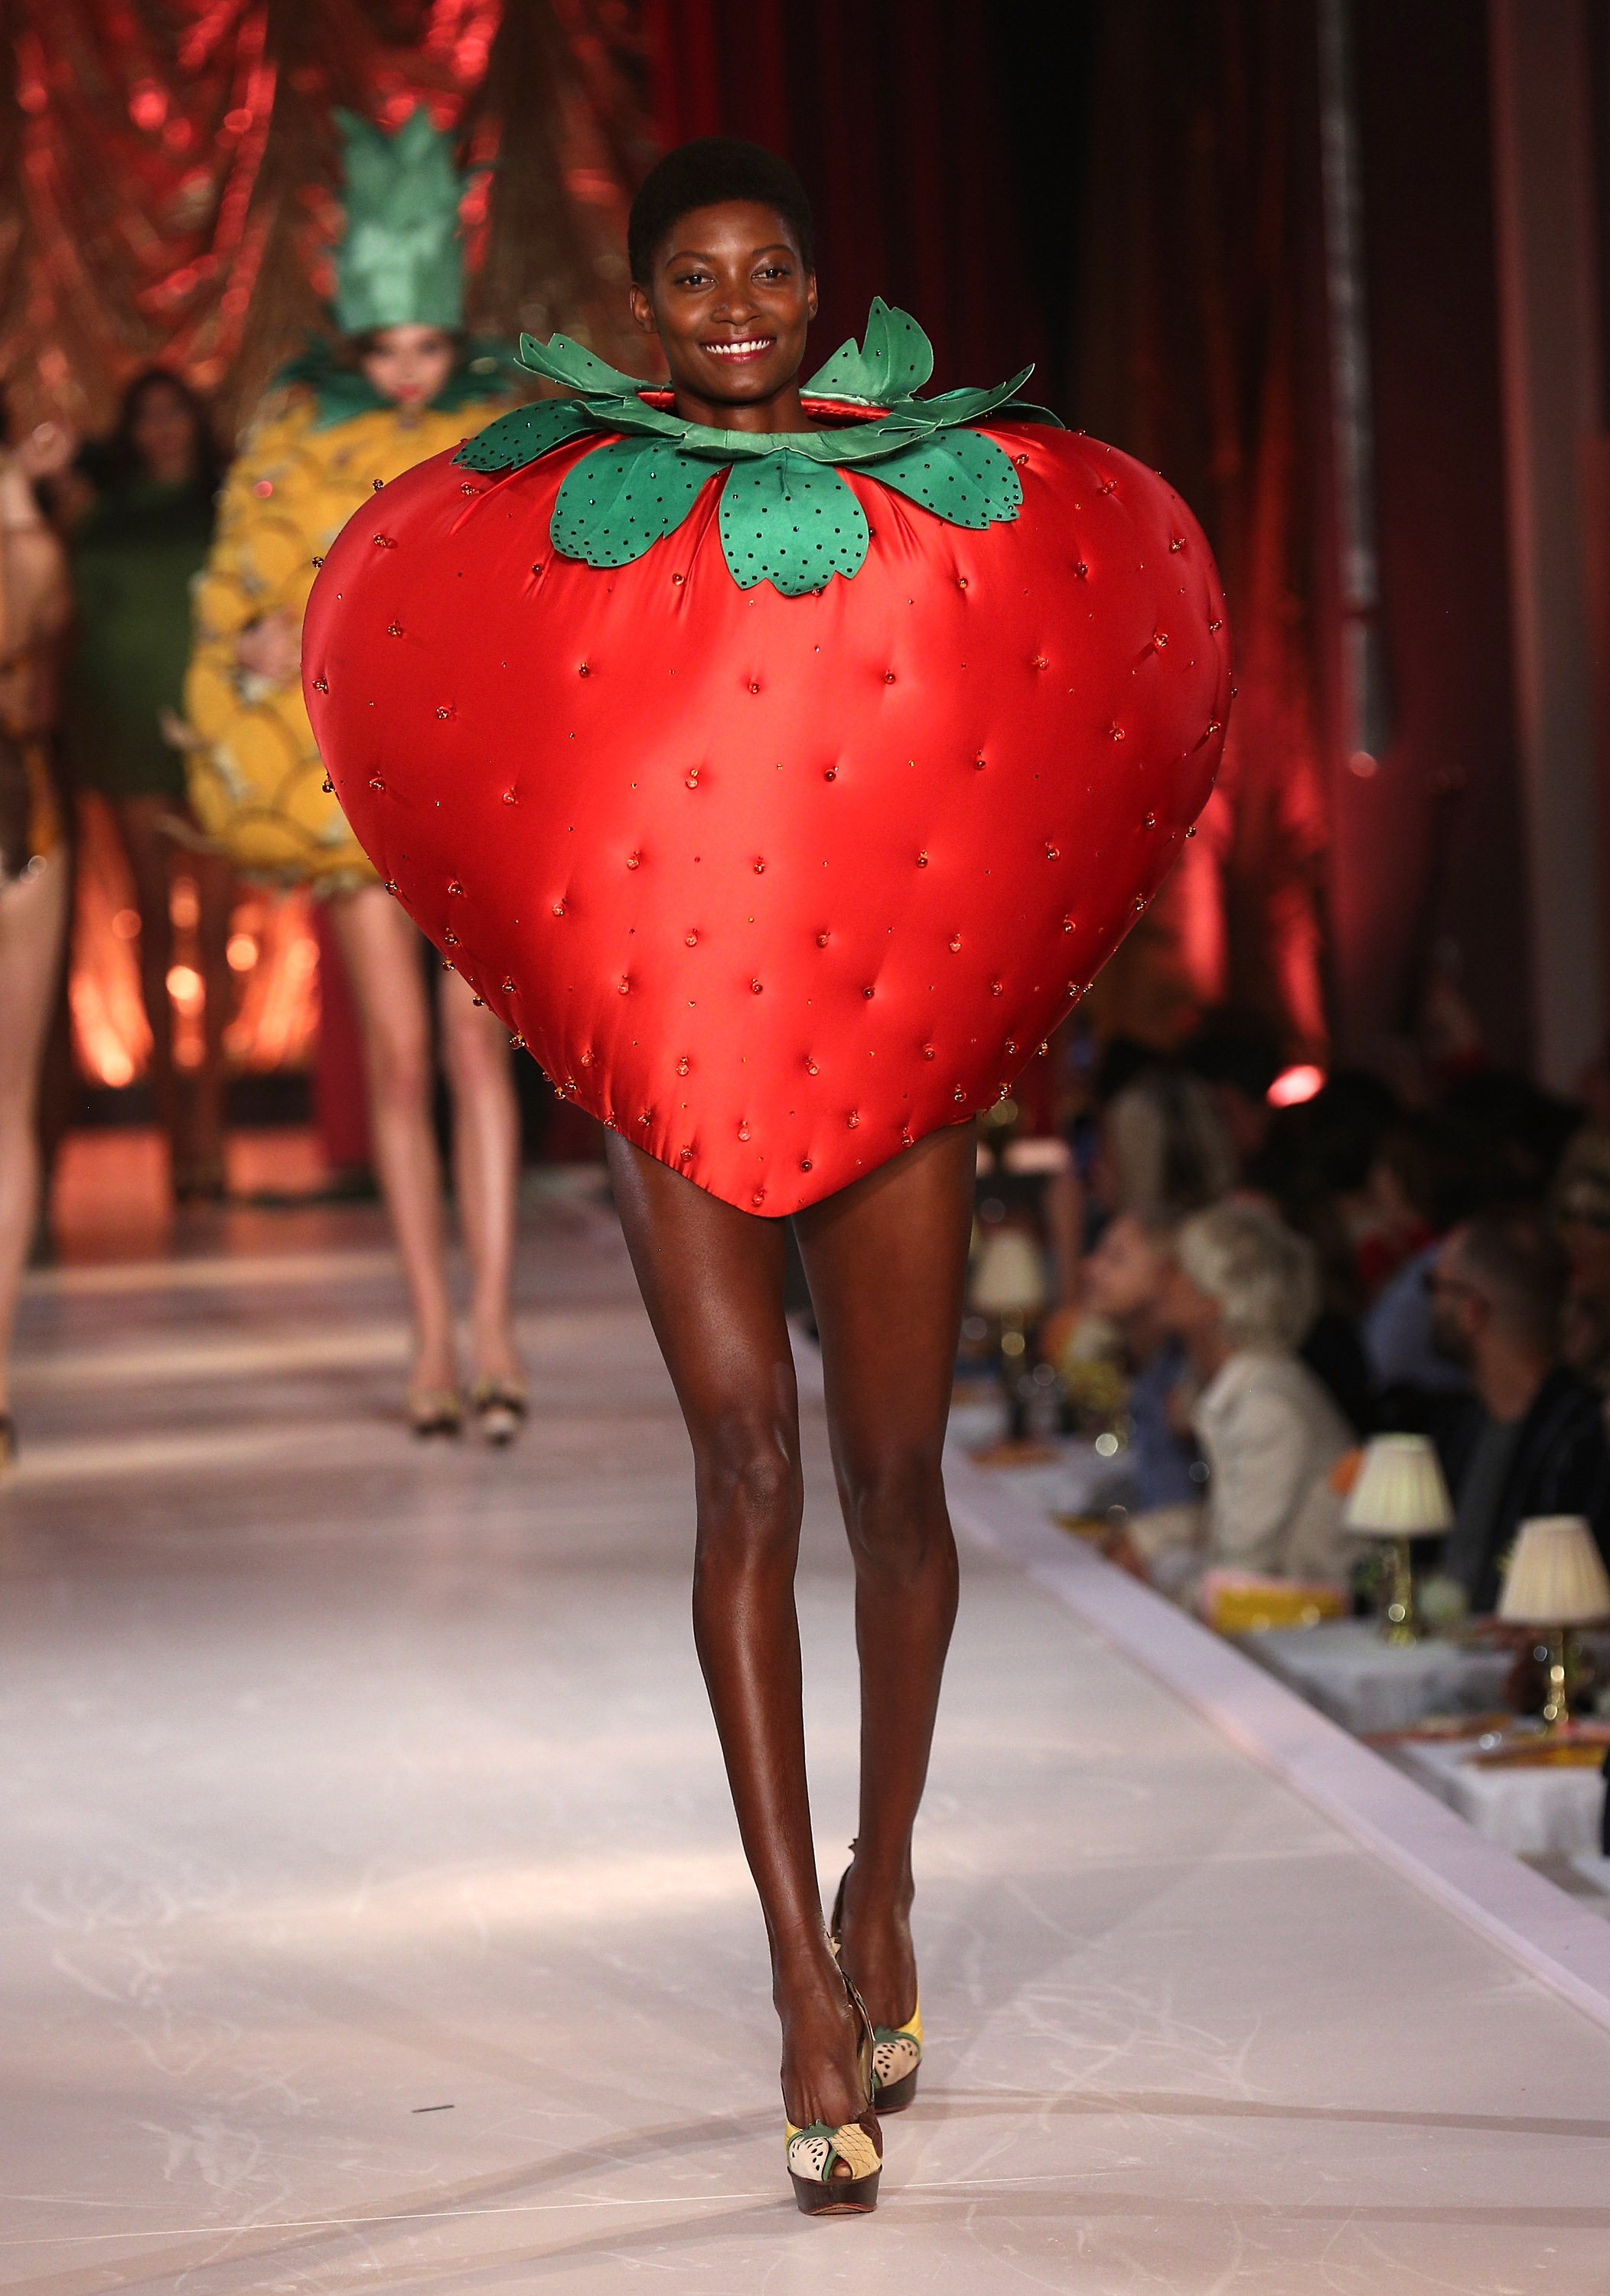 These Models Walked The Runway In Sexy Fruit Costumes, And -8938